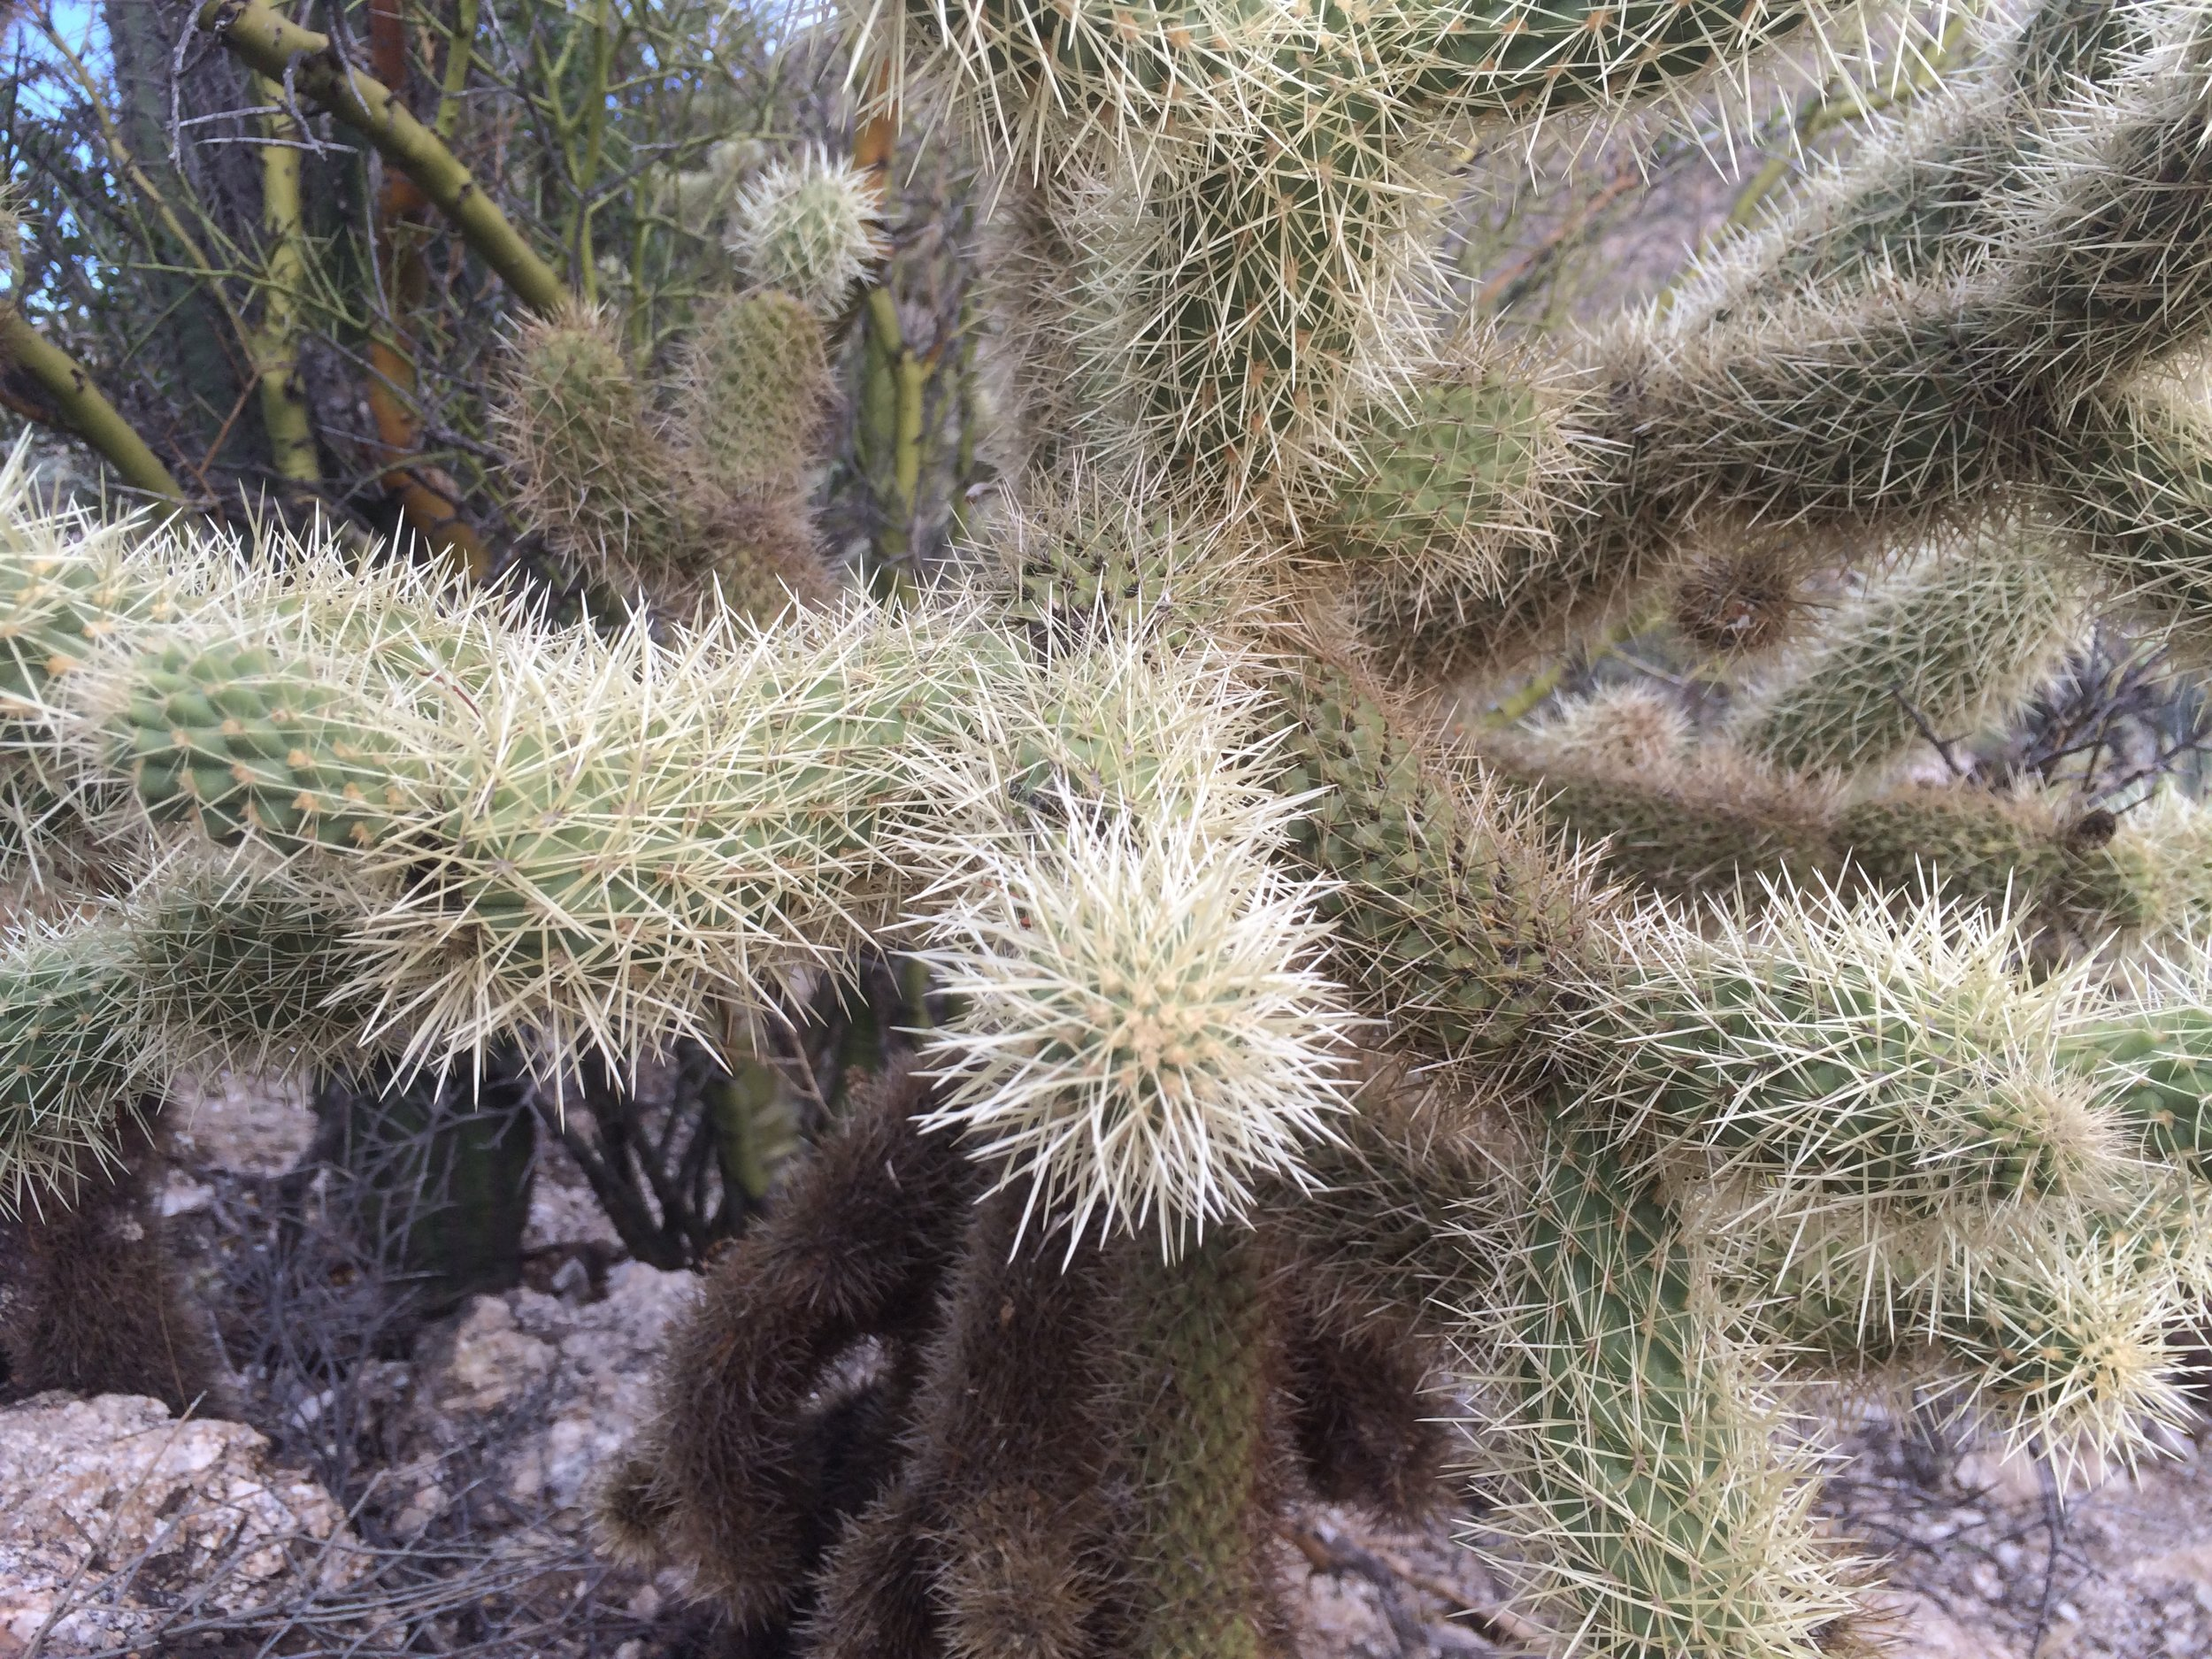 Cholla (Hoy-A) cacti look almost fuzzy from a distance, having more spikes on its many arms.